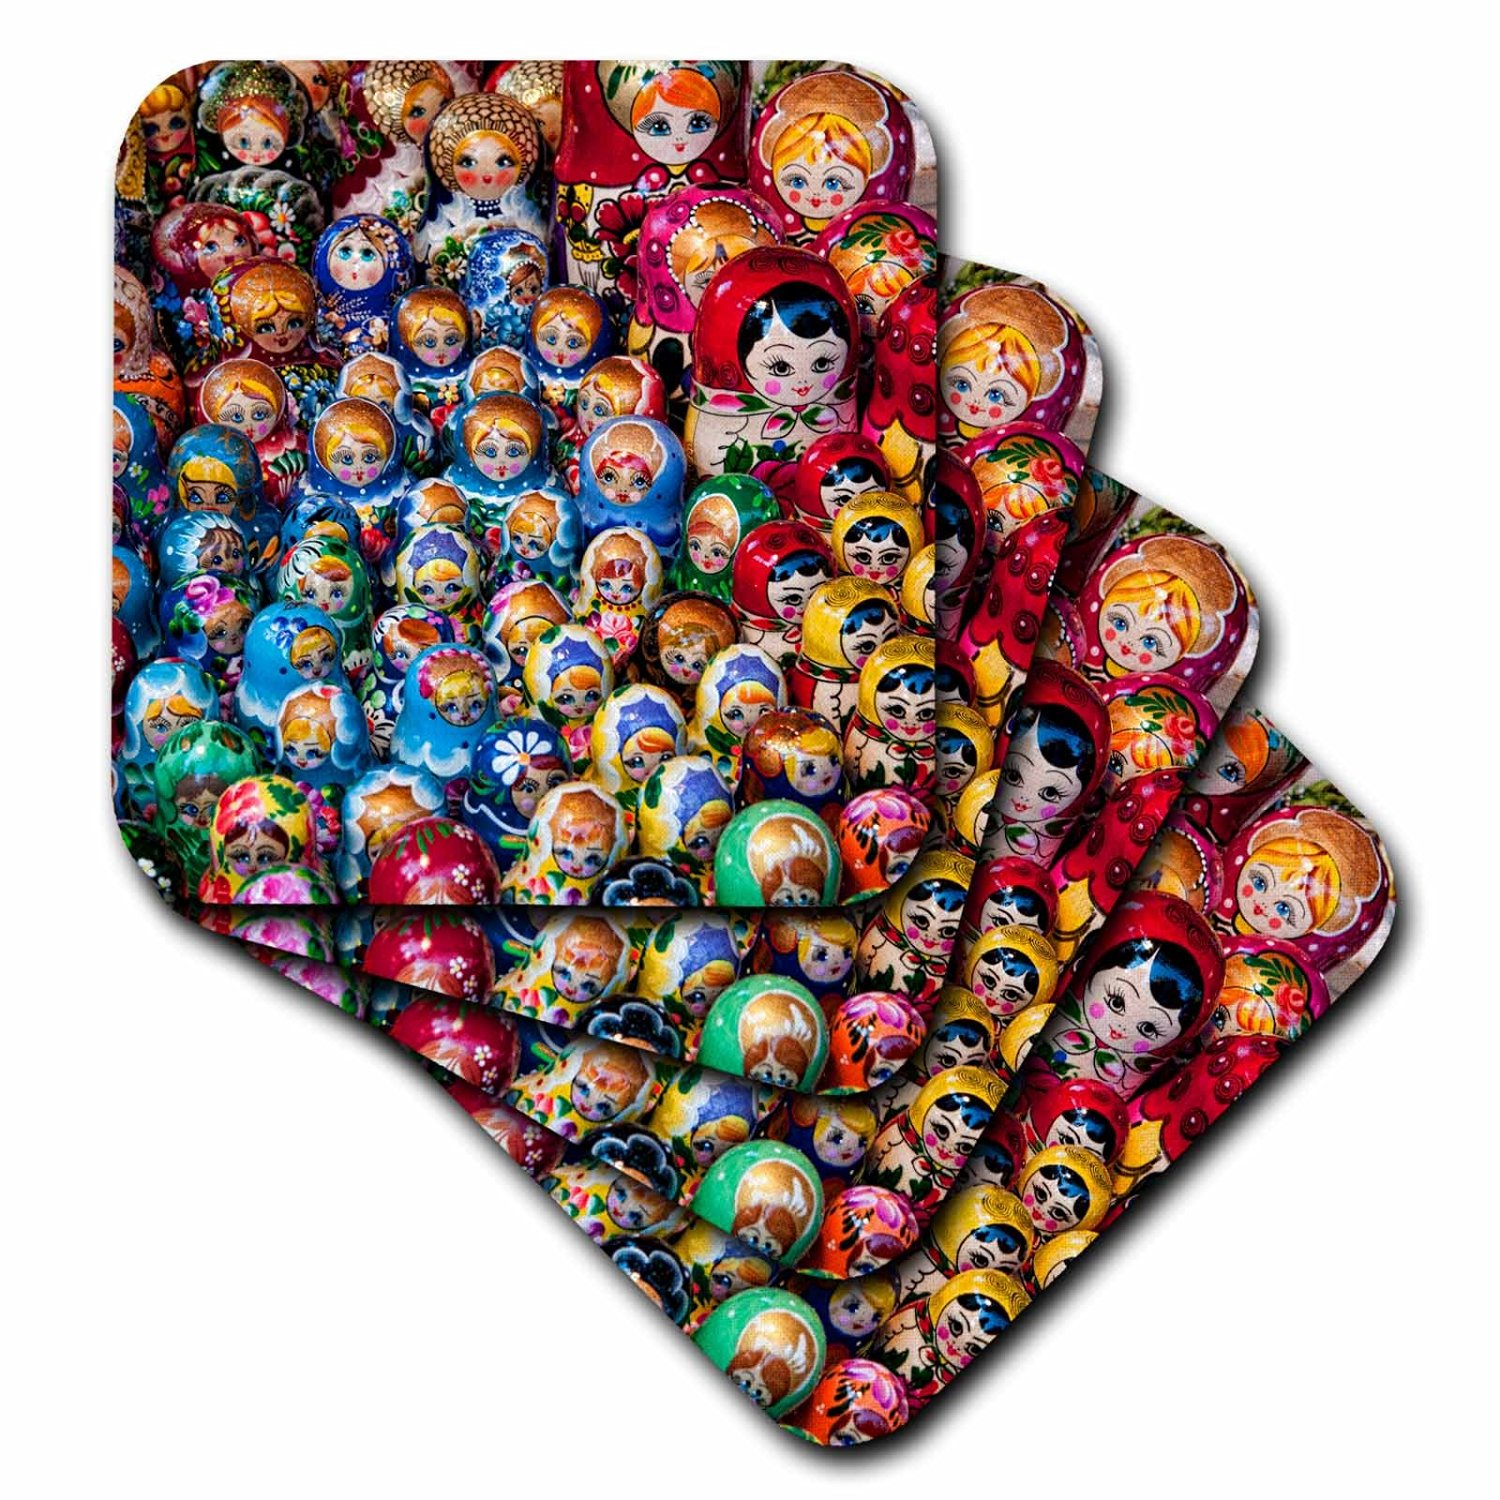 Danita Delimont - Traditional Crafts - Russian dolls, Crafts, Old Town, Warsaw, Poland - EU22 BBA0055 - Bill Bachmann - set of 8 Coasters - Soft (cst_82459_2)